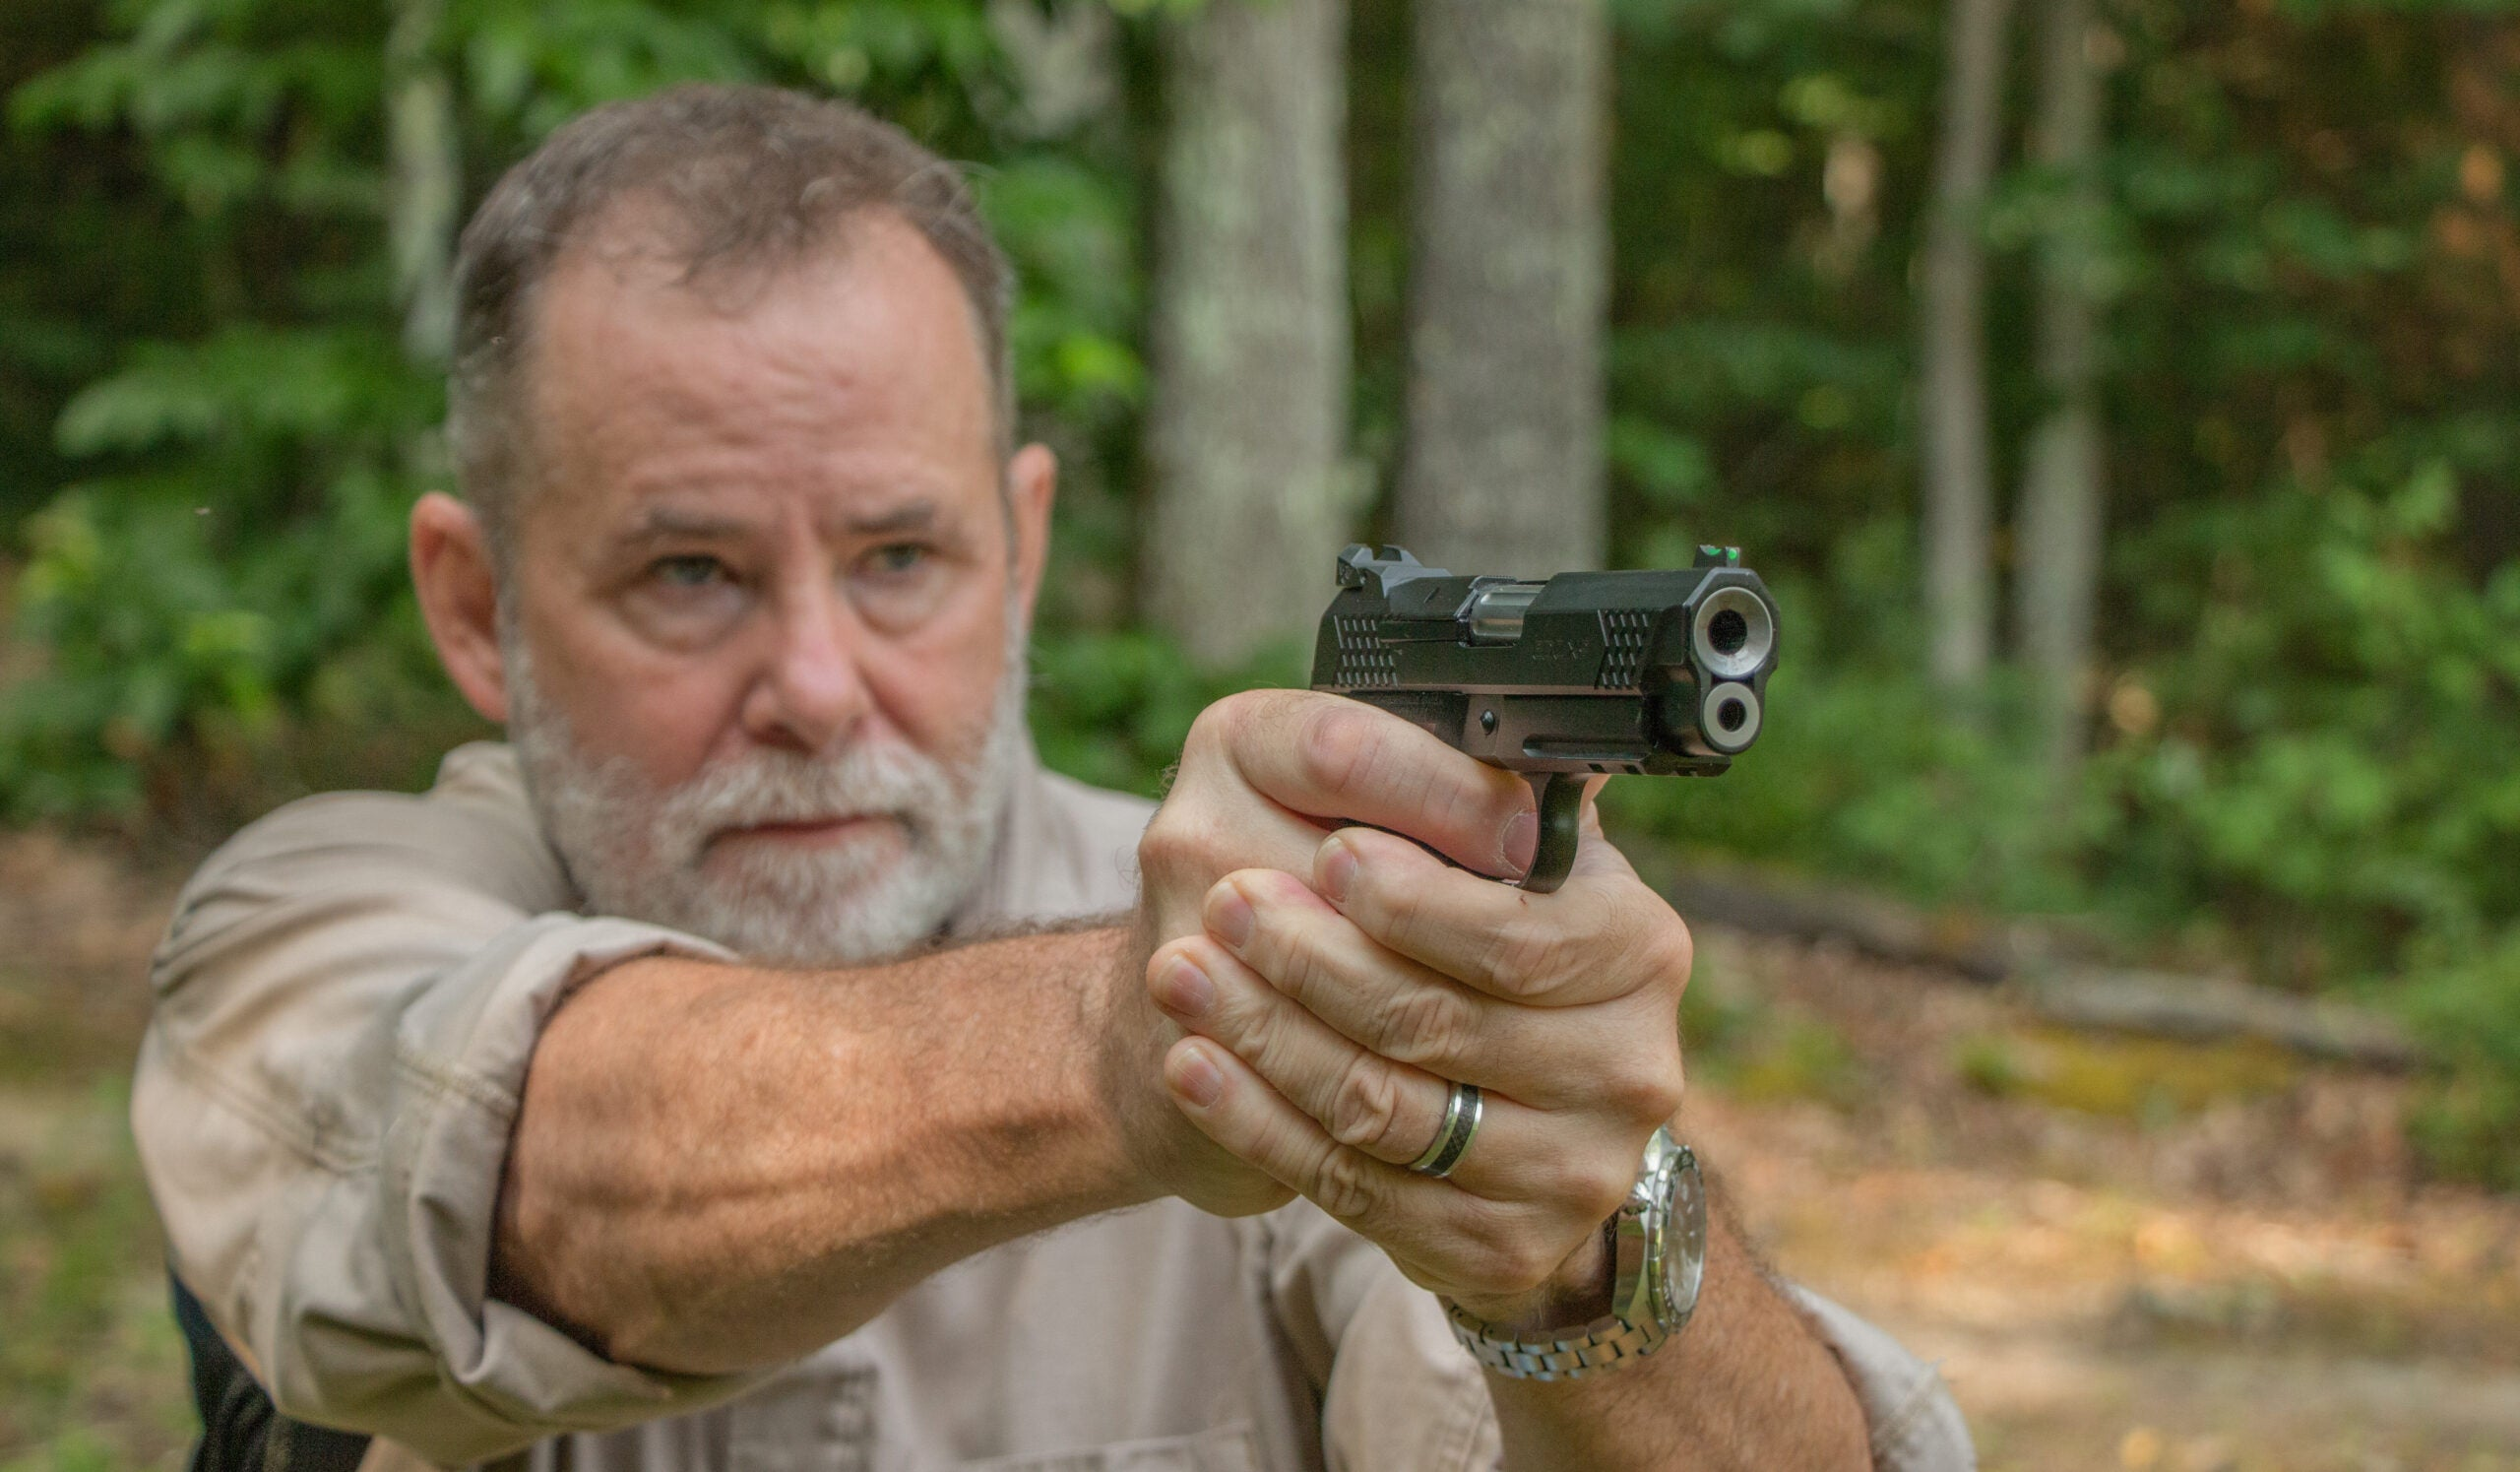 Richard Mann shoots a handgun